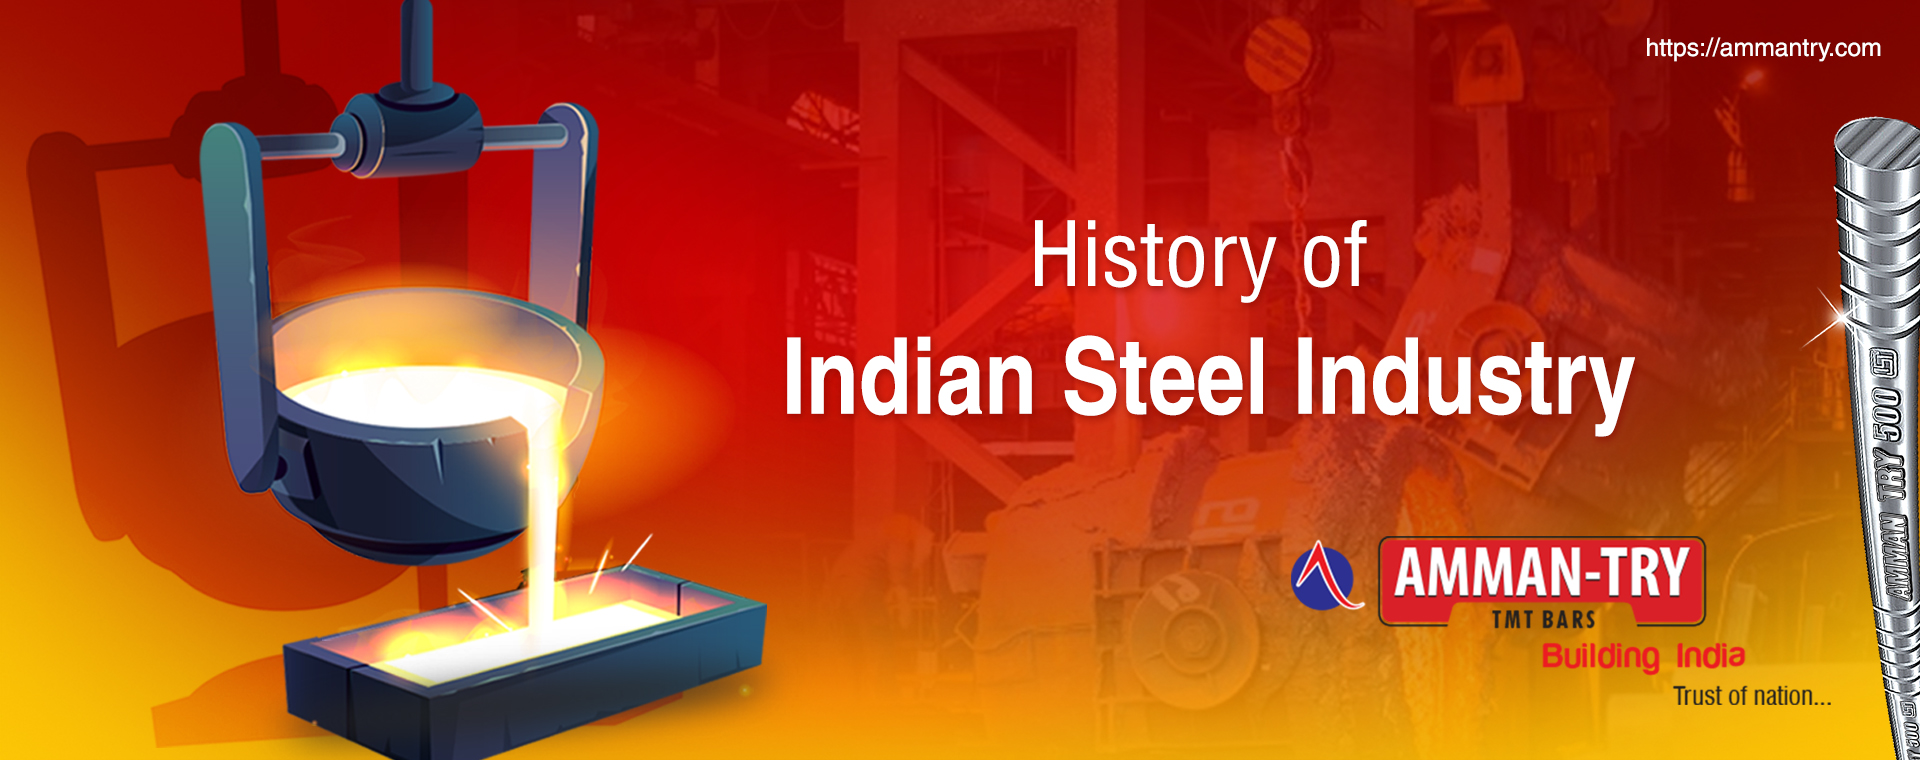 History of Indian Steel Industry